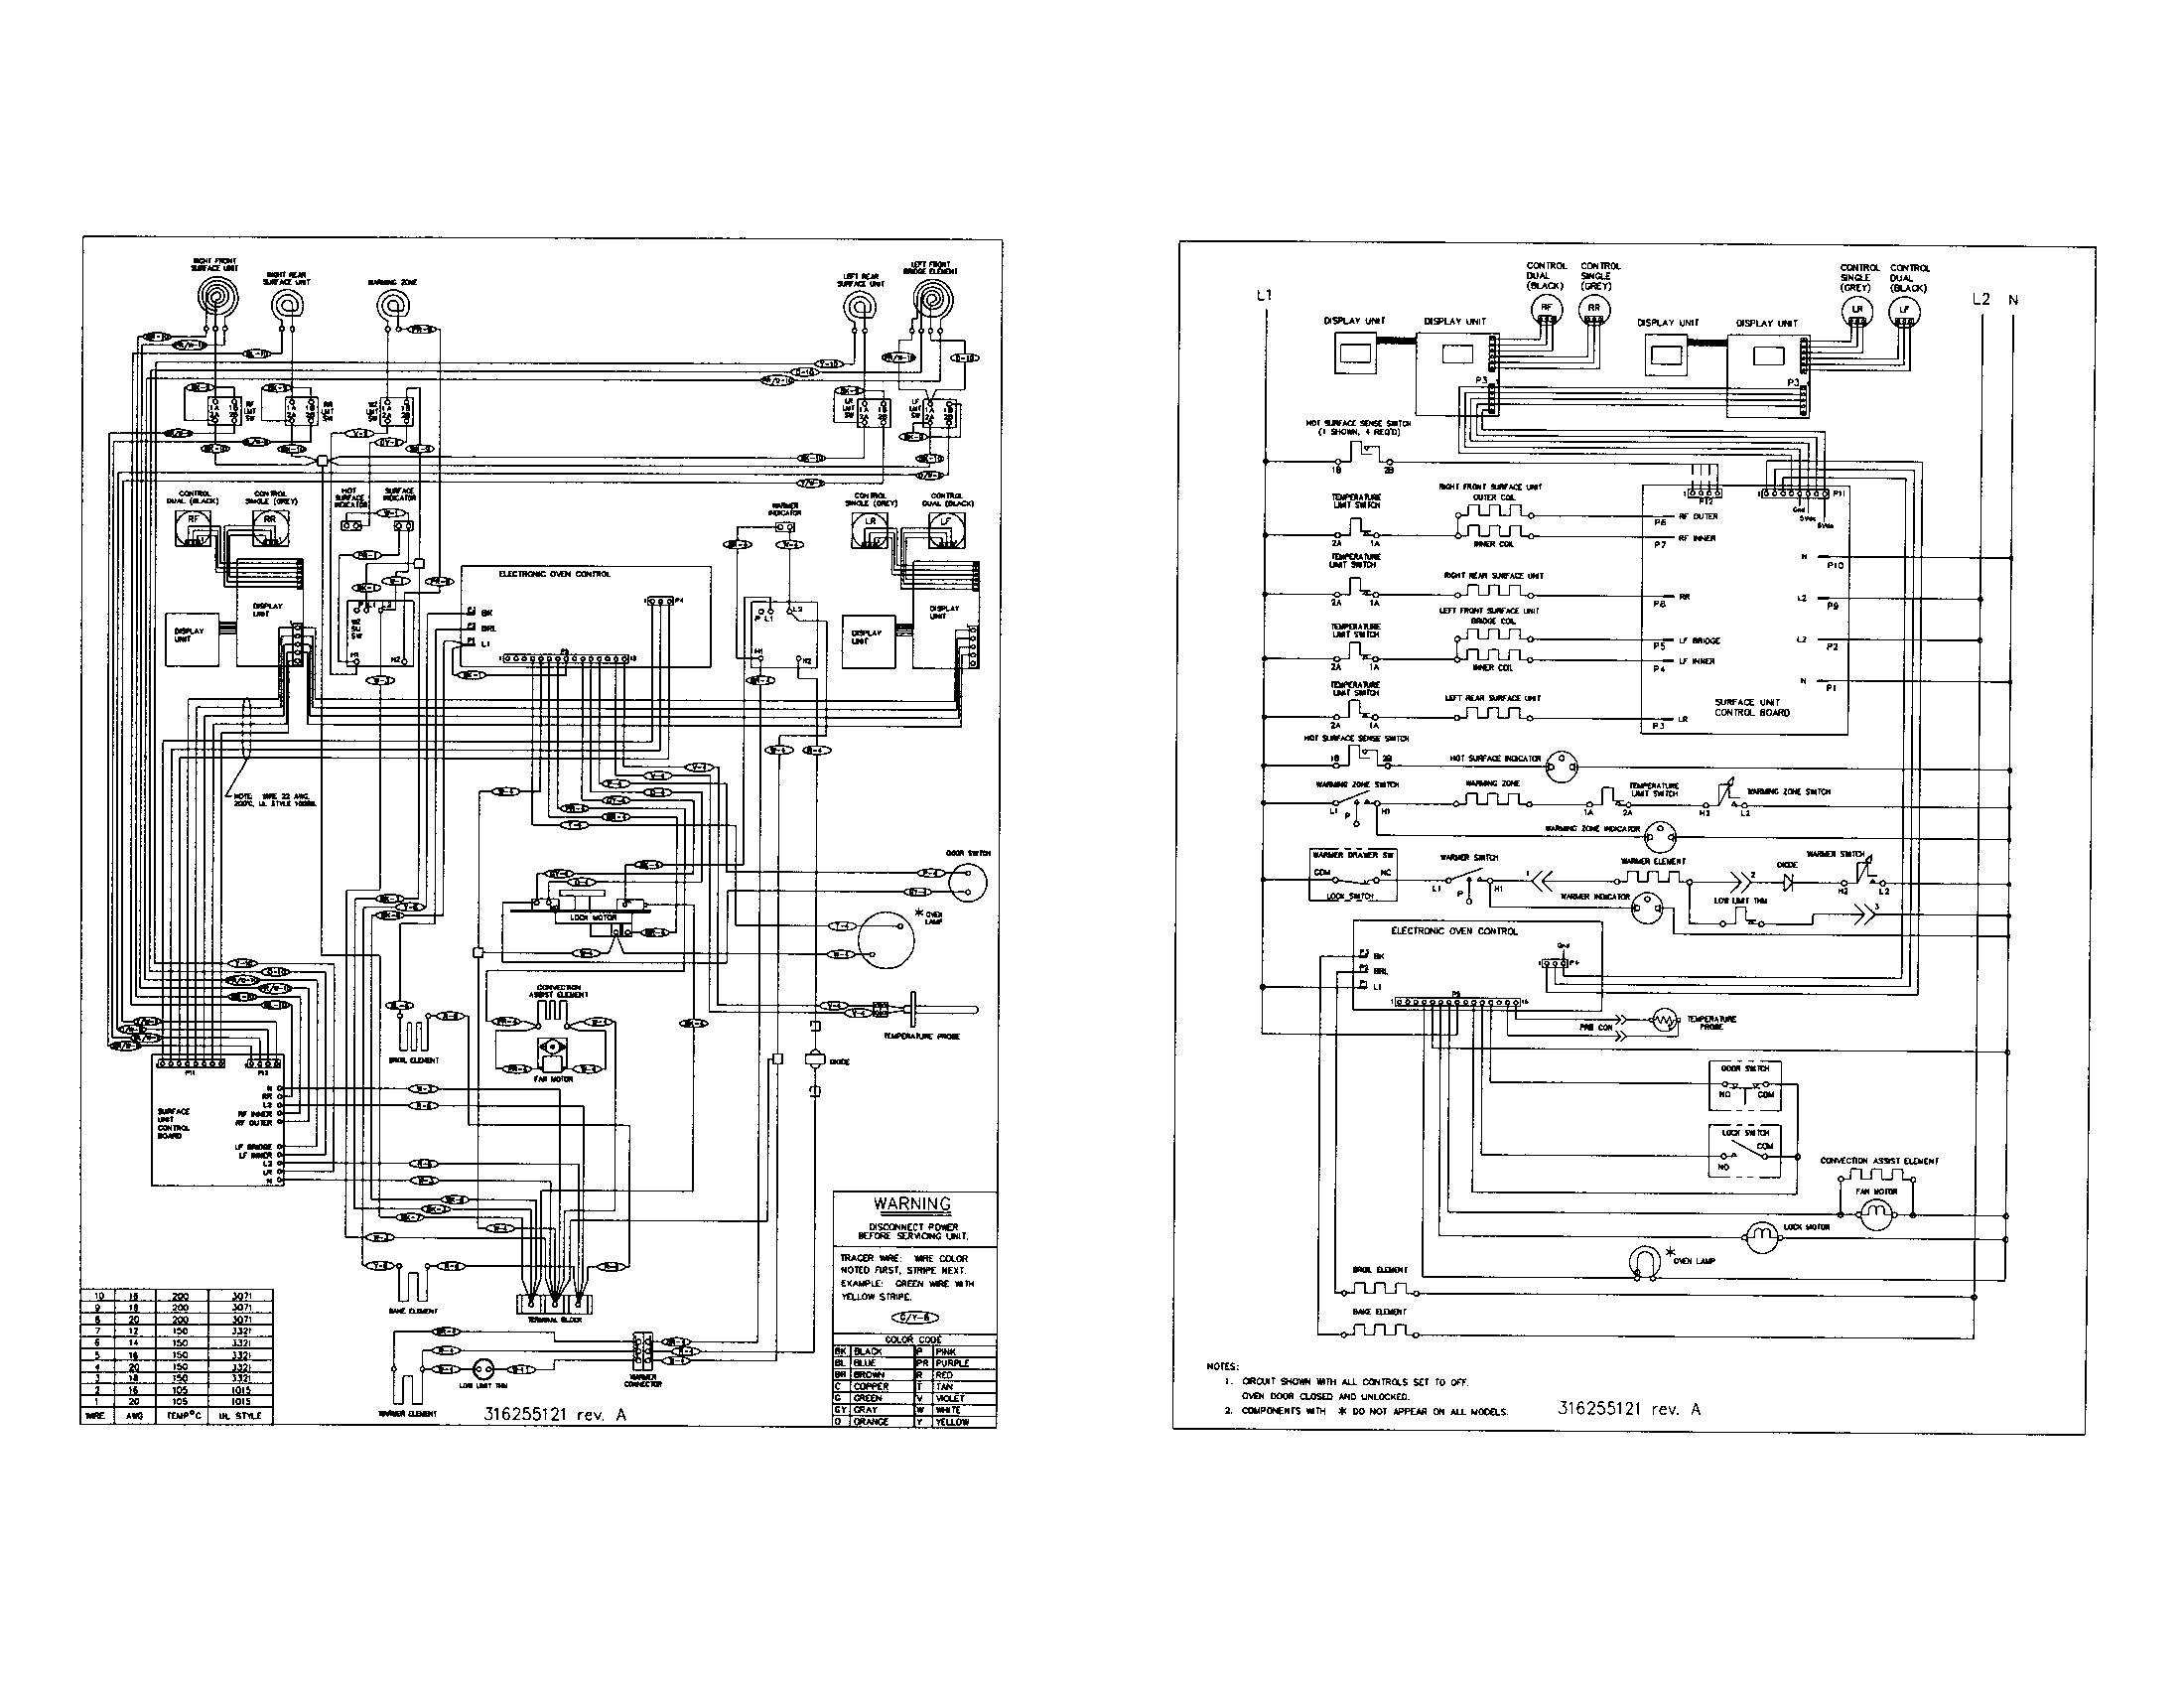 wiring diagram parts?resize\\\\\\\\\\\\\\\\\\\\\\\\\\\\\\\\\\\\\\\\\\\\\\\\\\\\\\\\\\\\\\\\\\\\\\\\\\\\\\\\\\\\\\\\\\\\\\\\\\\\\\\\\\\\\\\\\\\\\\\\\\\\\\\\\\\\\\\\\\\\\\\\\\\\\\\\\\\\\\\\\\\\\\\\\\\\\\\\\\\\\\\\\\\\\\\\\\\\\\\\\\\\\\\\\\\\\\\\\\\\\\\\\\\\\\\\\\\\\\\\\\\\\\\\\\\\\\\\\\\\\\\\\\\\\\\\\\\\\\\\\\\\\\\\\\\\\\\\\\\\\\\\\\\\\\\\\\\\\\\\\\\\\\\\\\\\\\\\\\\\\\\\\\\\\\\\\\\\\\\\\\\\\\\\\\\\\\\\\\\\\\\\\\\\\\\\\\\\\\\\\\\\\\\\\\\\\\\=840%2C648 lr27935 wiring diagram simple circuit diagram \u2022 free wiring mercury thermostat wiring diagram at suagrazia.org